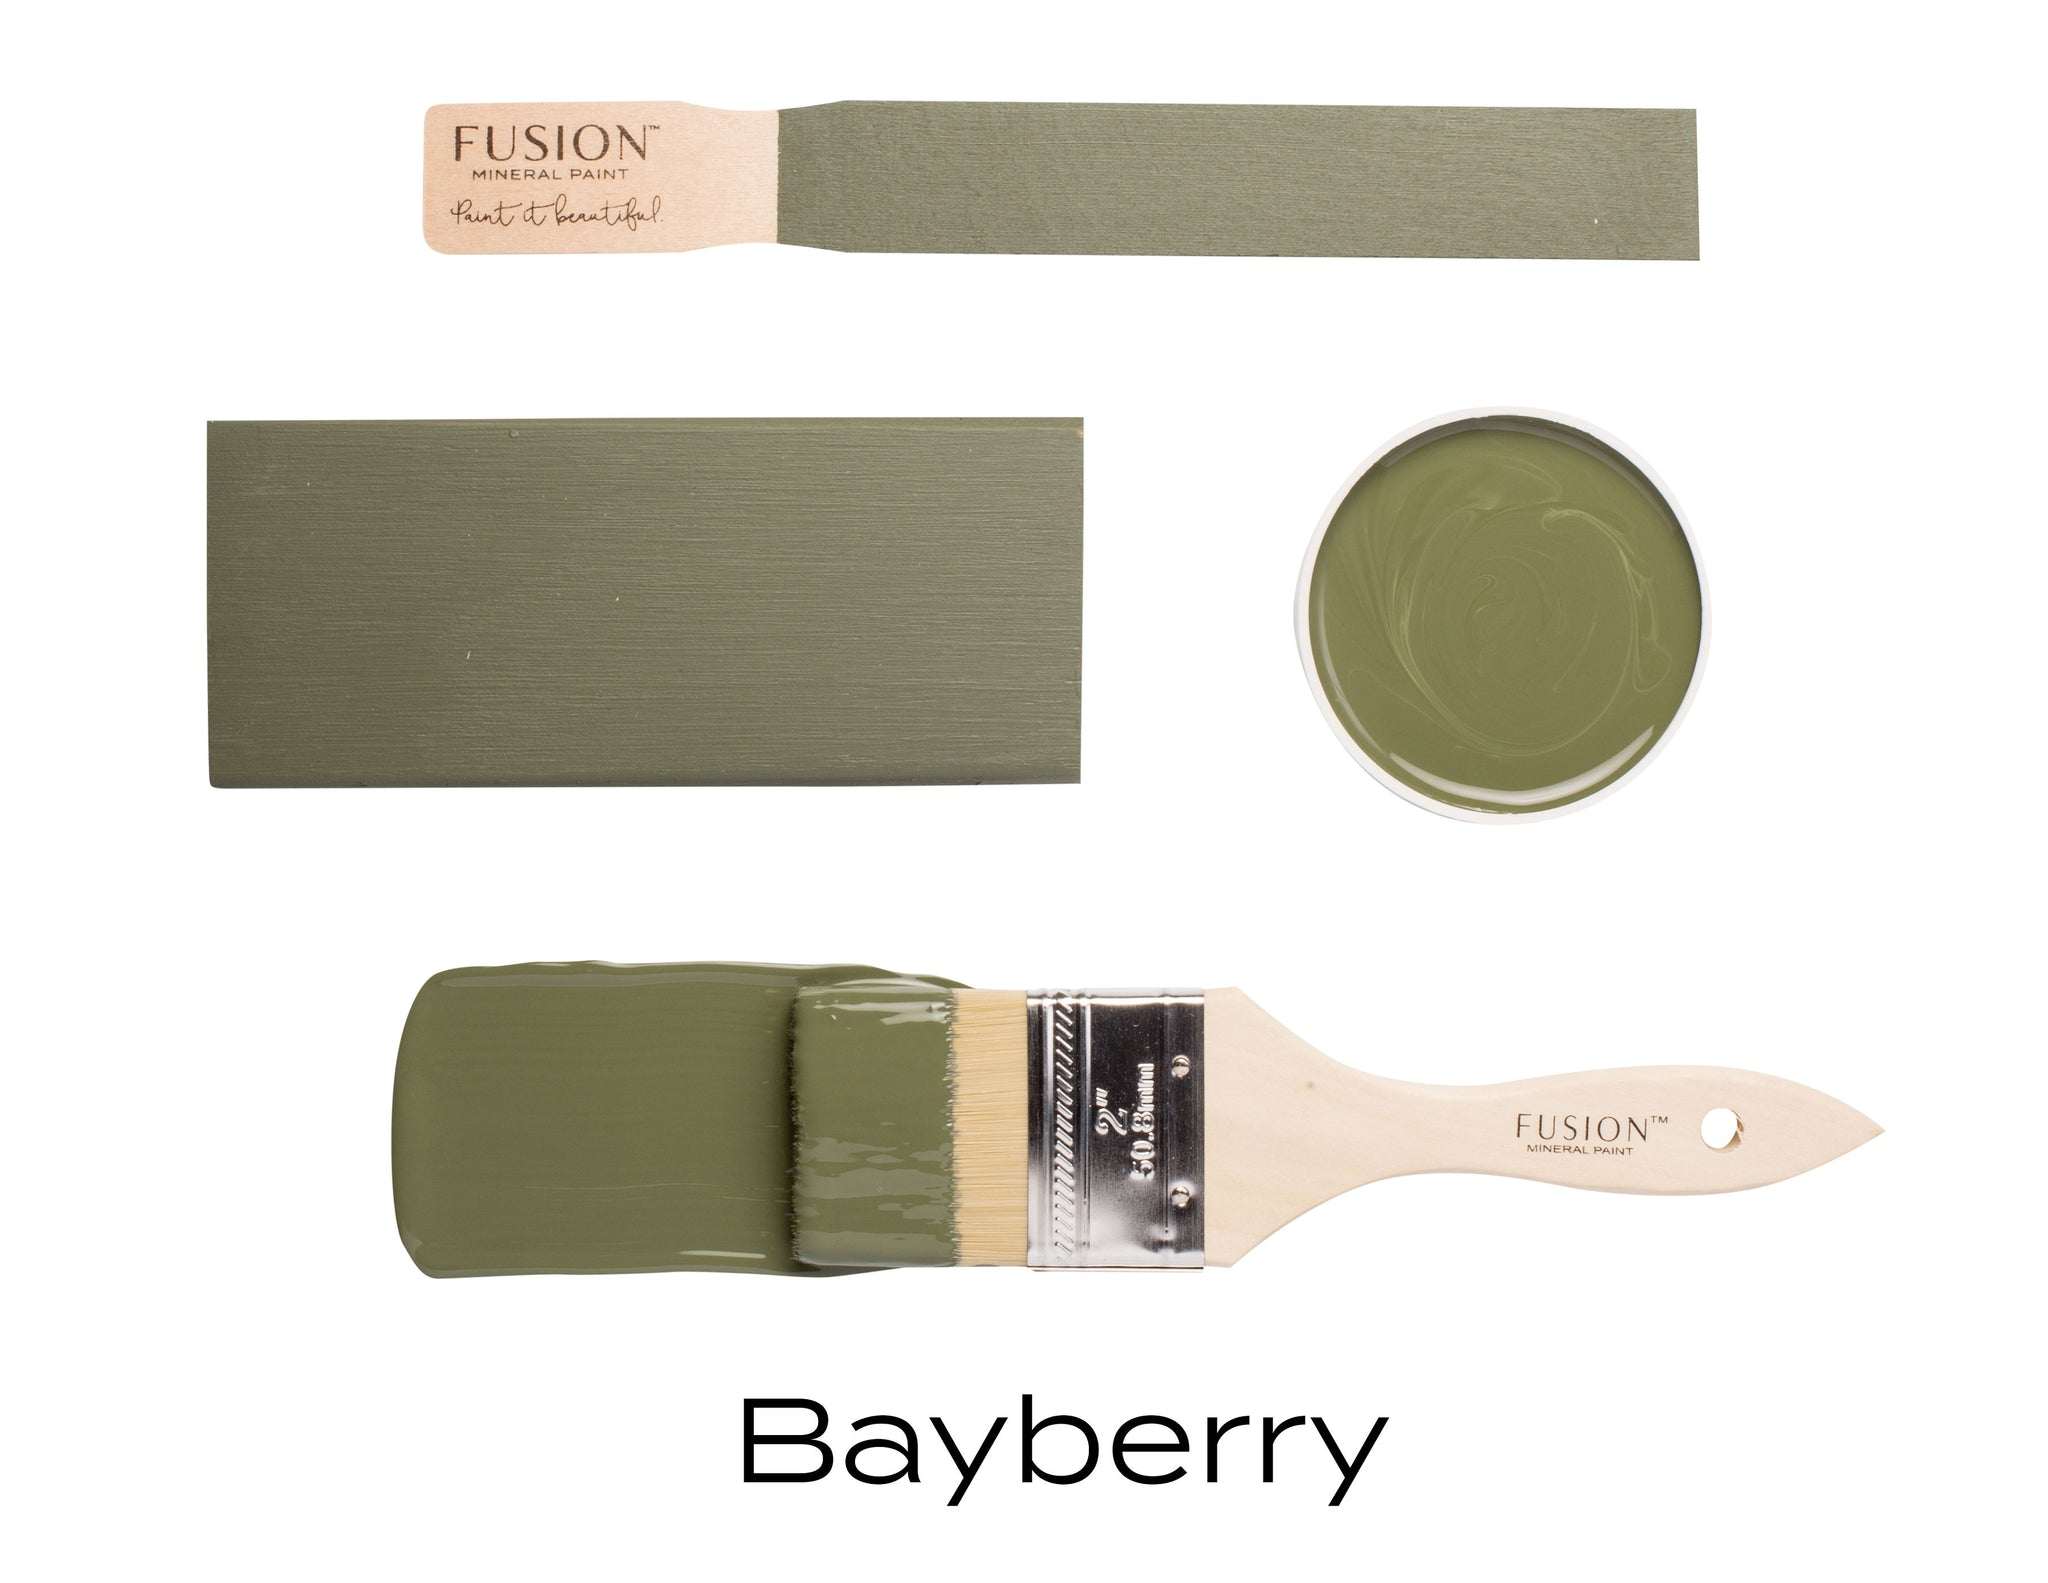 Fusion Mineral Paint: Bayberry - Lyla's: Clothing, Decor & More - Plano Boutique